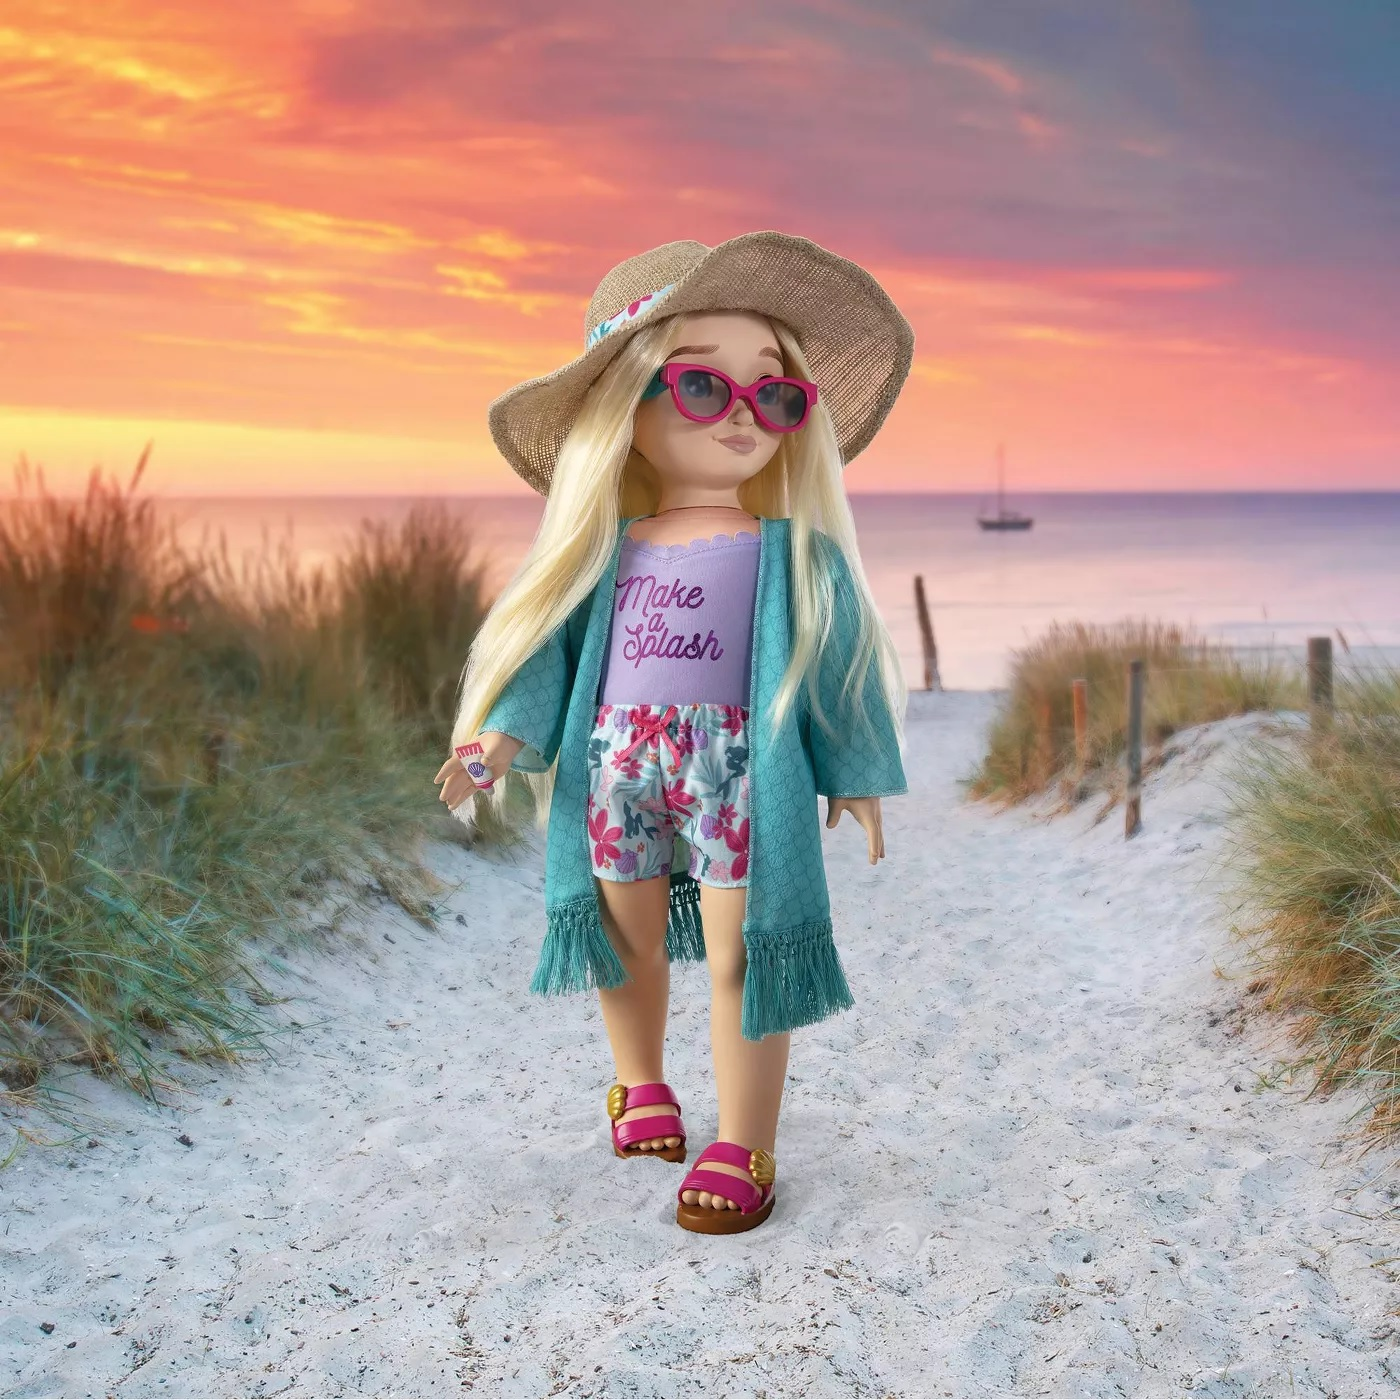 Disney ily 4EVER fashion doll collection is now available at Target 17